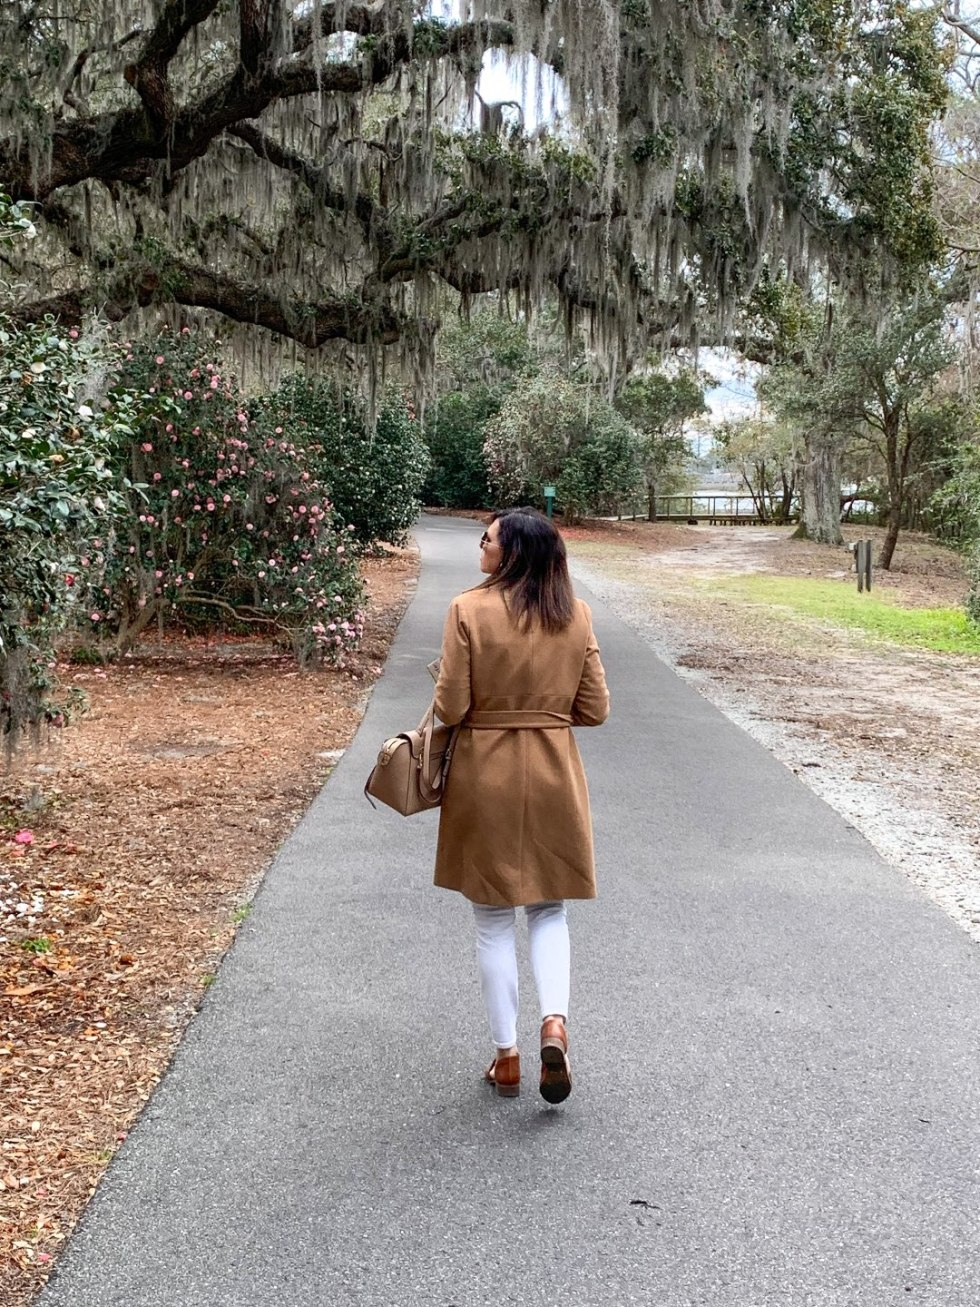 Best Places to Photography in North Carolina by popular N.C. lifestyle blog, I'm Fixin' To: image of a woman walking on a asphalt pathway under a tree covered in Spanish Moss at the Airlie Gardens.